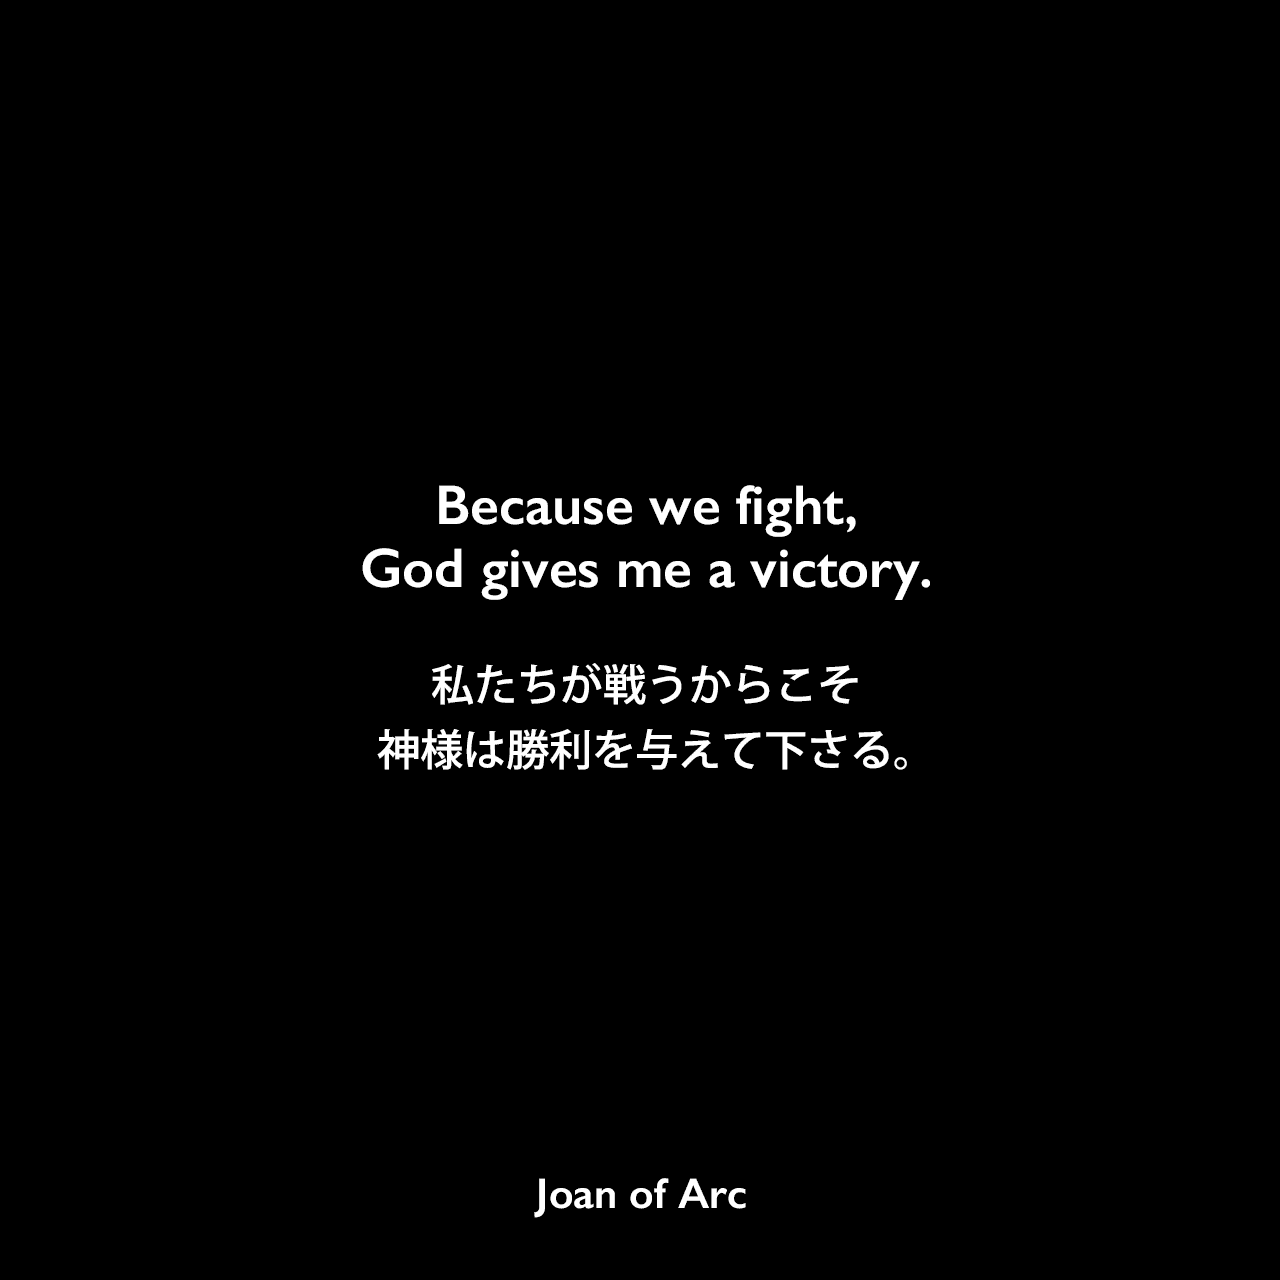 Because we fight, God gives me a victory.私たちが戦うからこそ、神様は勝利を与えて下さる。Joan of Arc